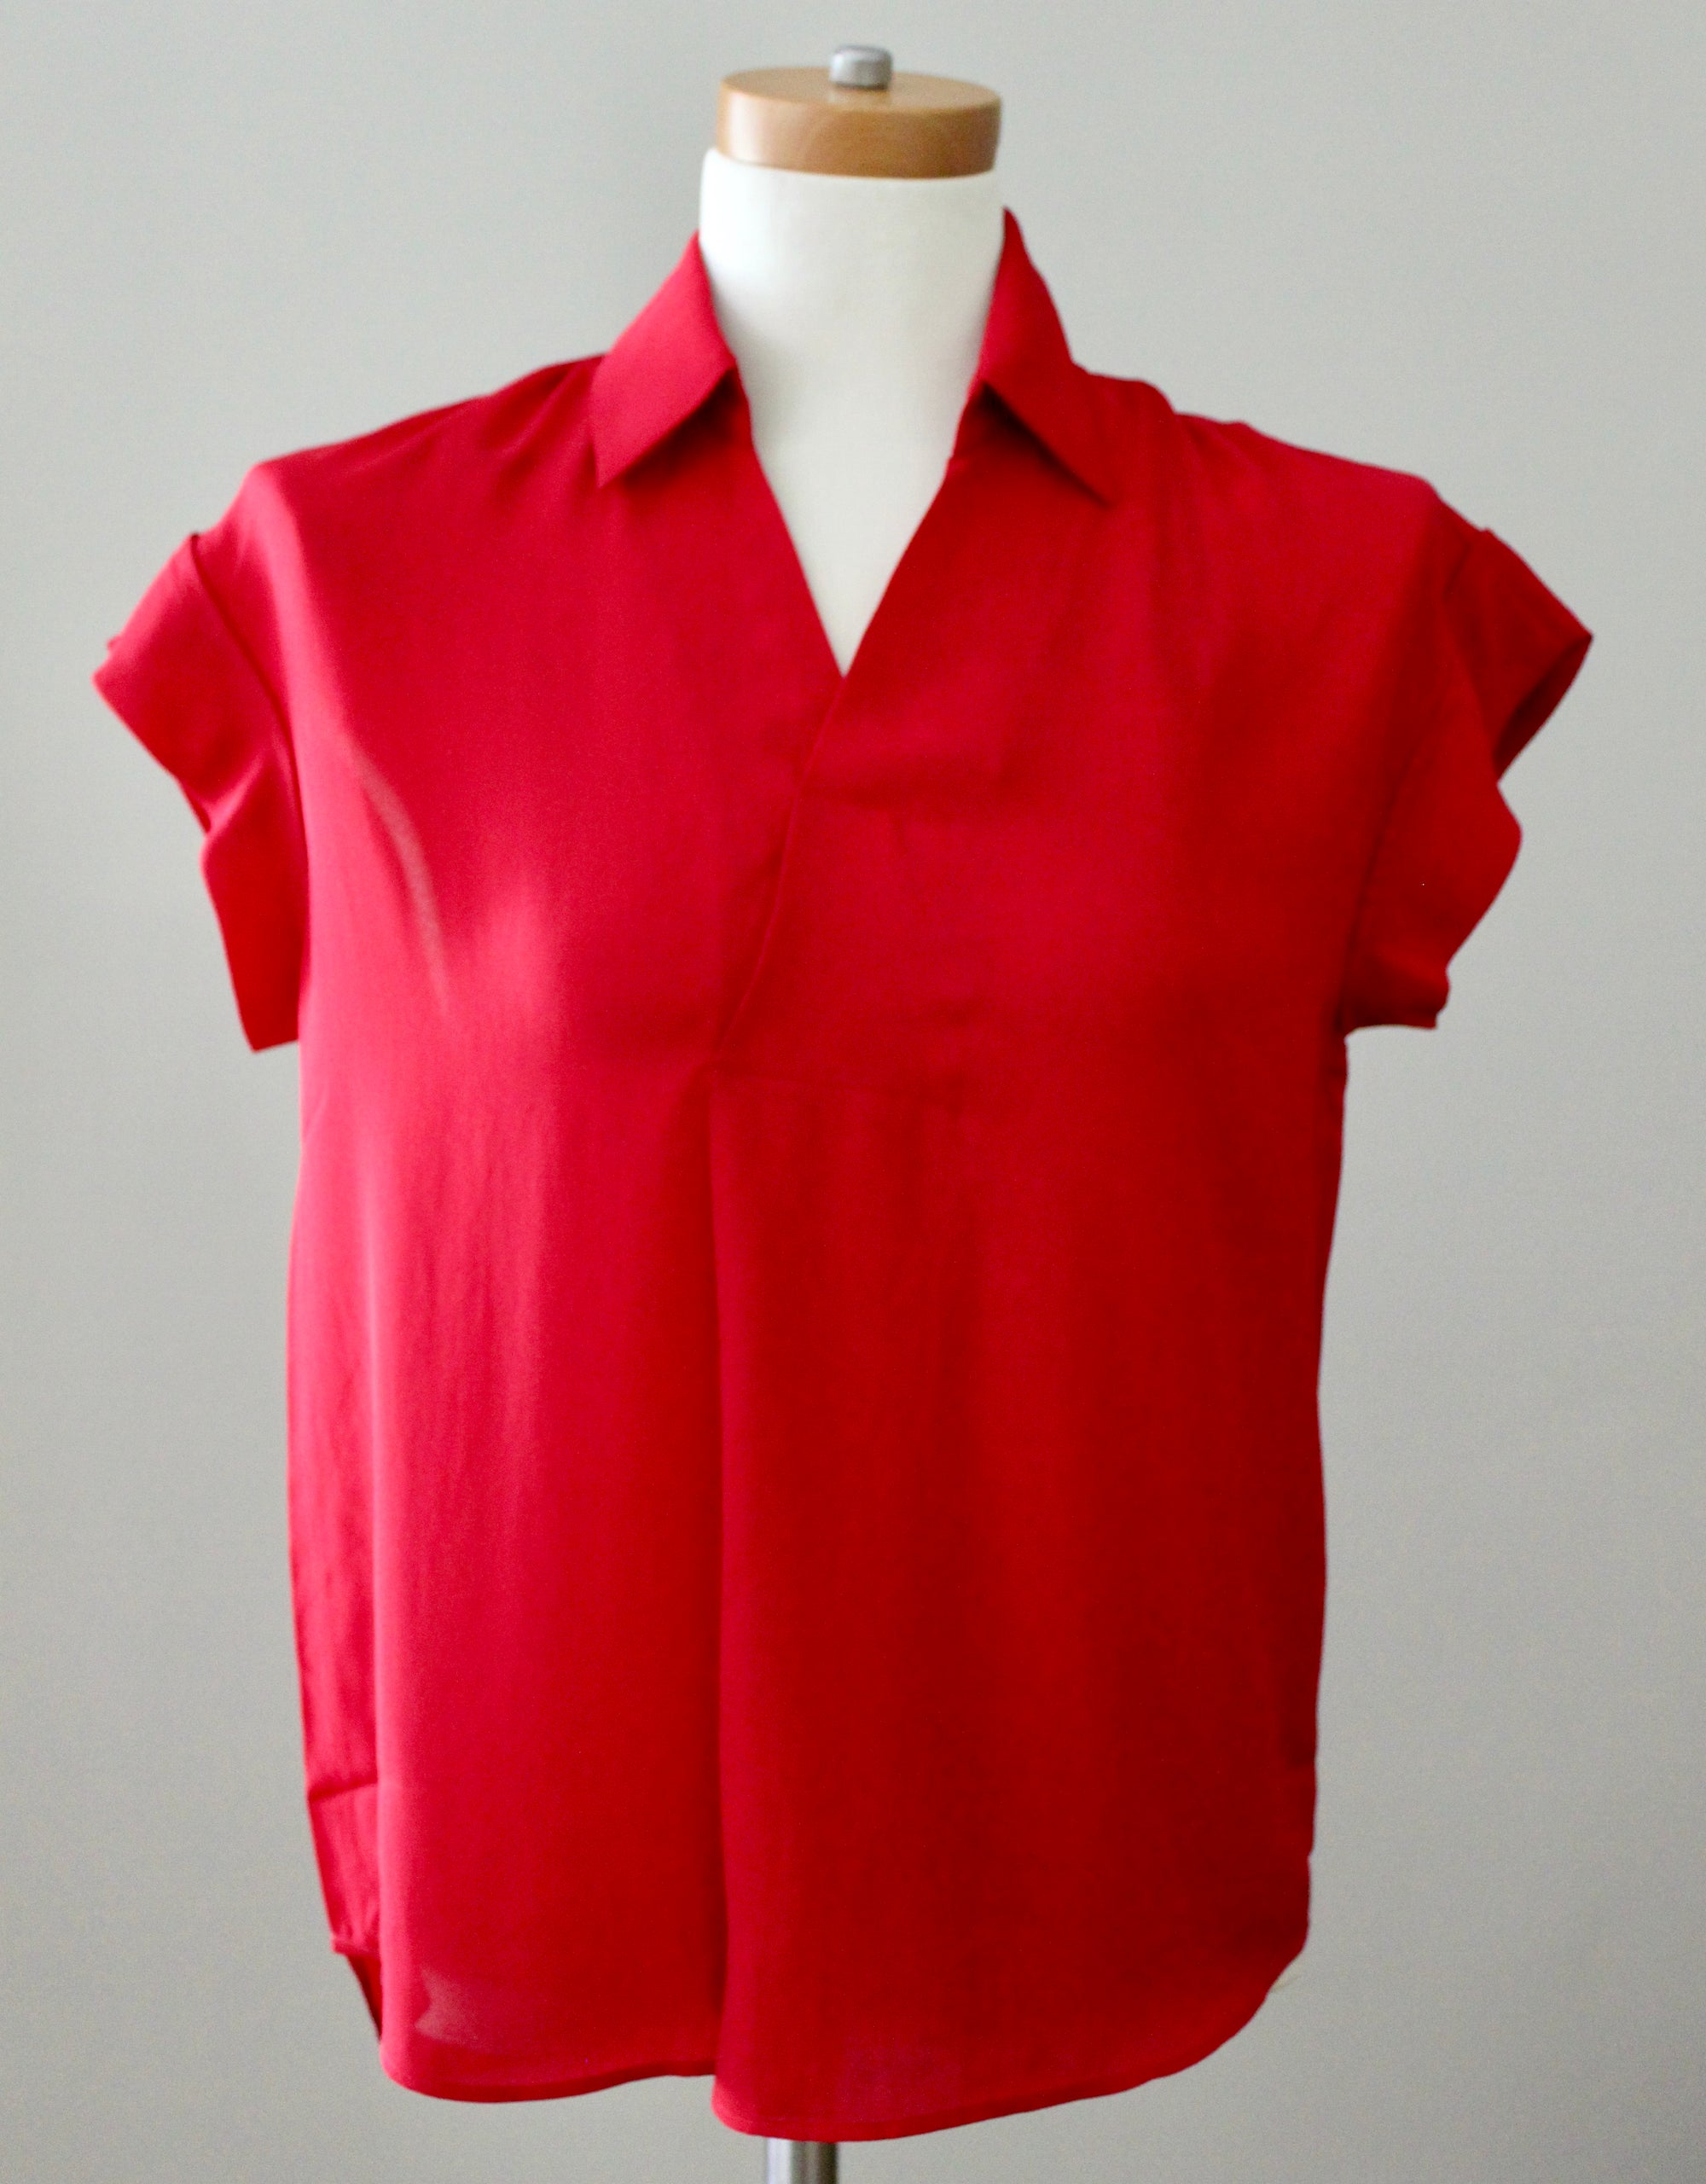 EVERLEIGH Dark Winter Red Collared Blouse